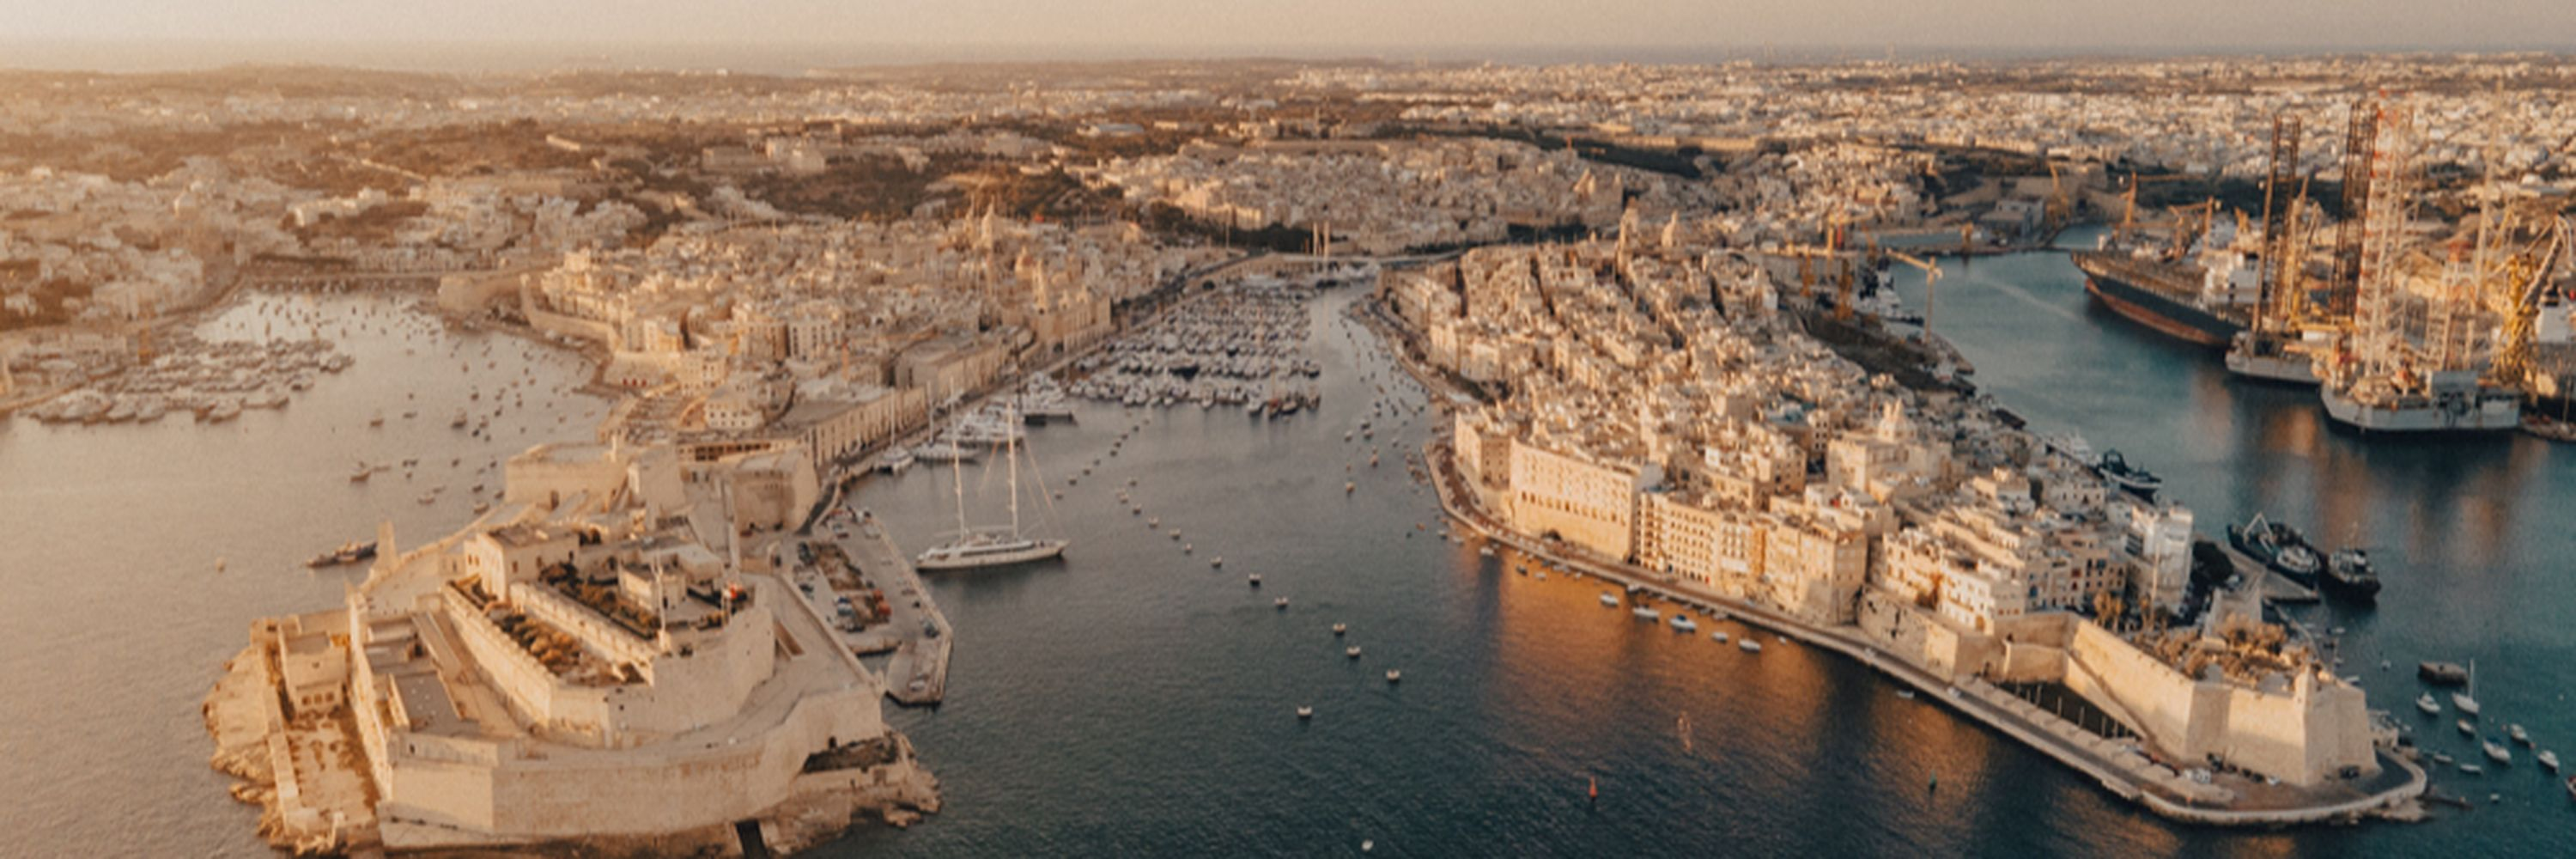 an aerial view of the Grand Harbour, Valletta, Malta